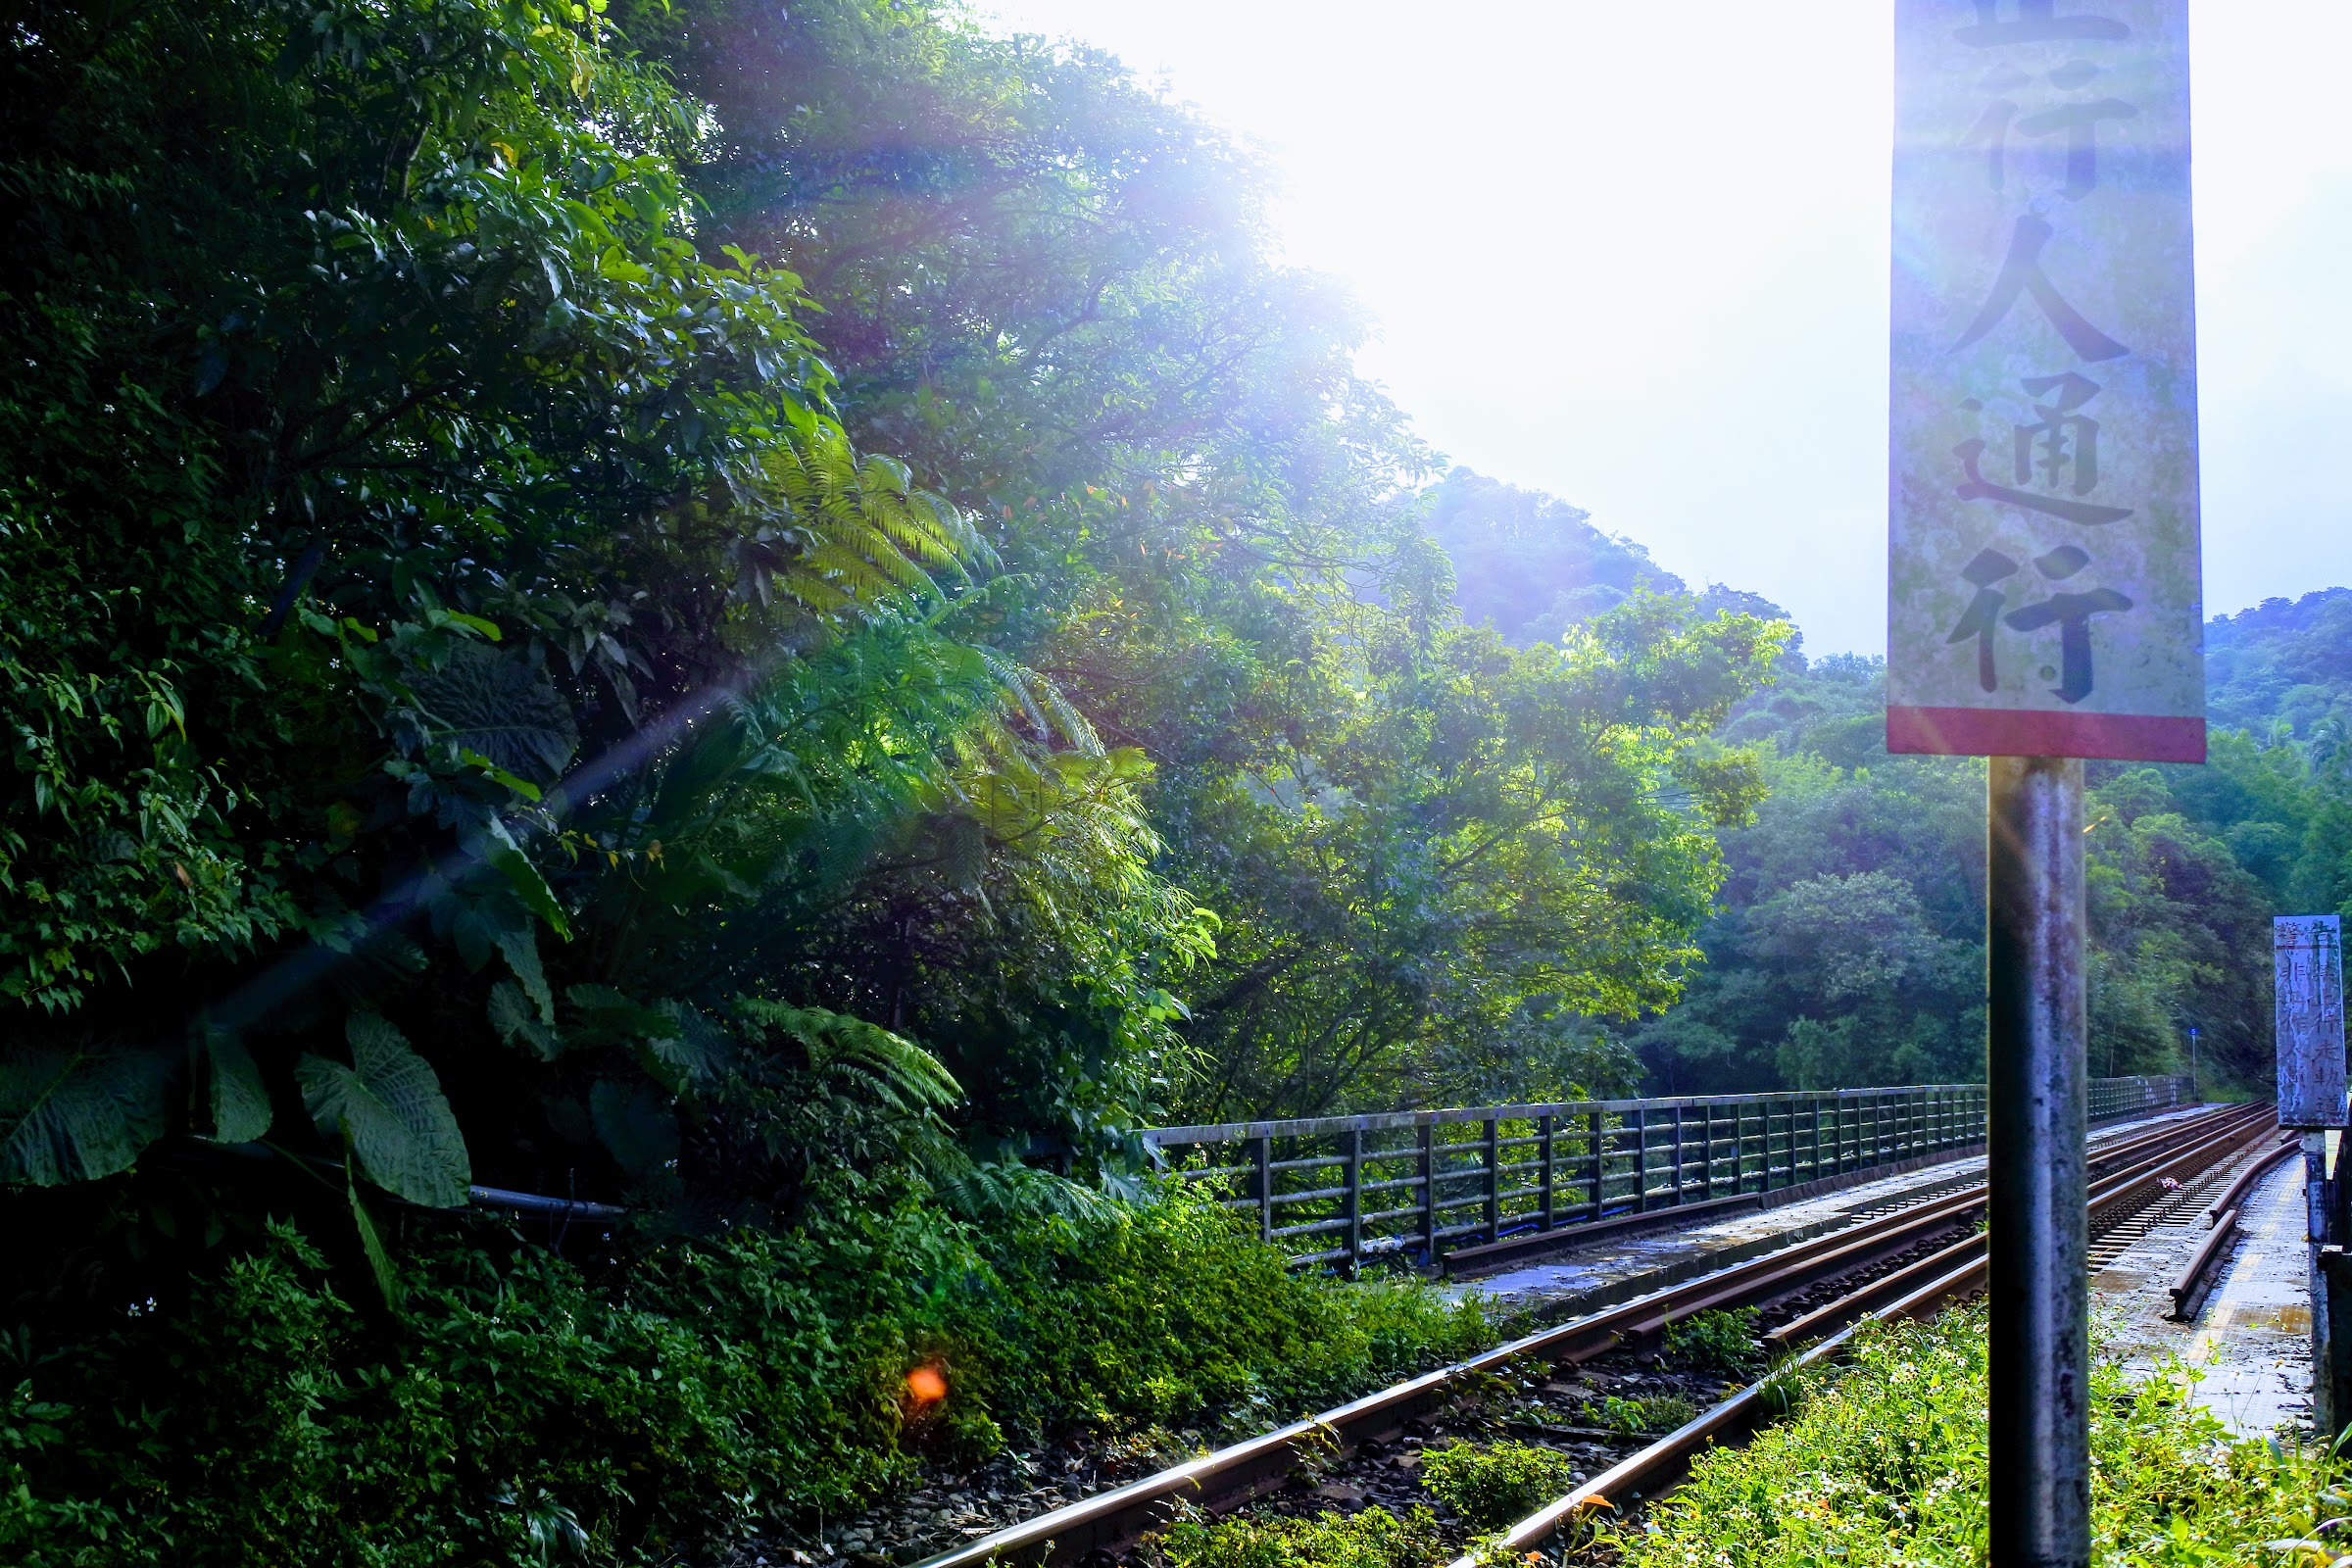 Pingxi railway line before reaching Shifen Waterfall